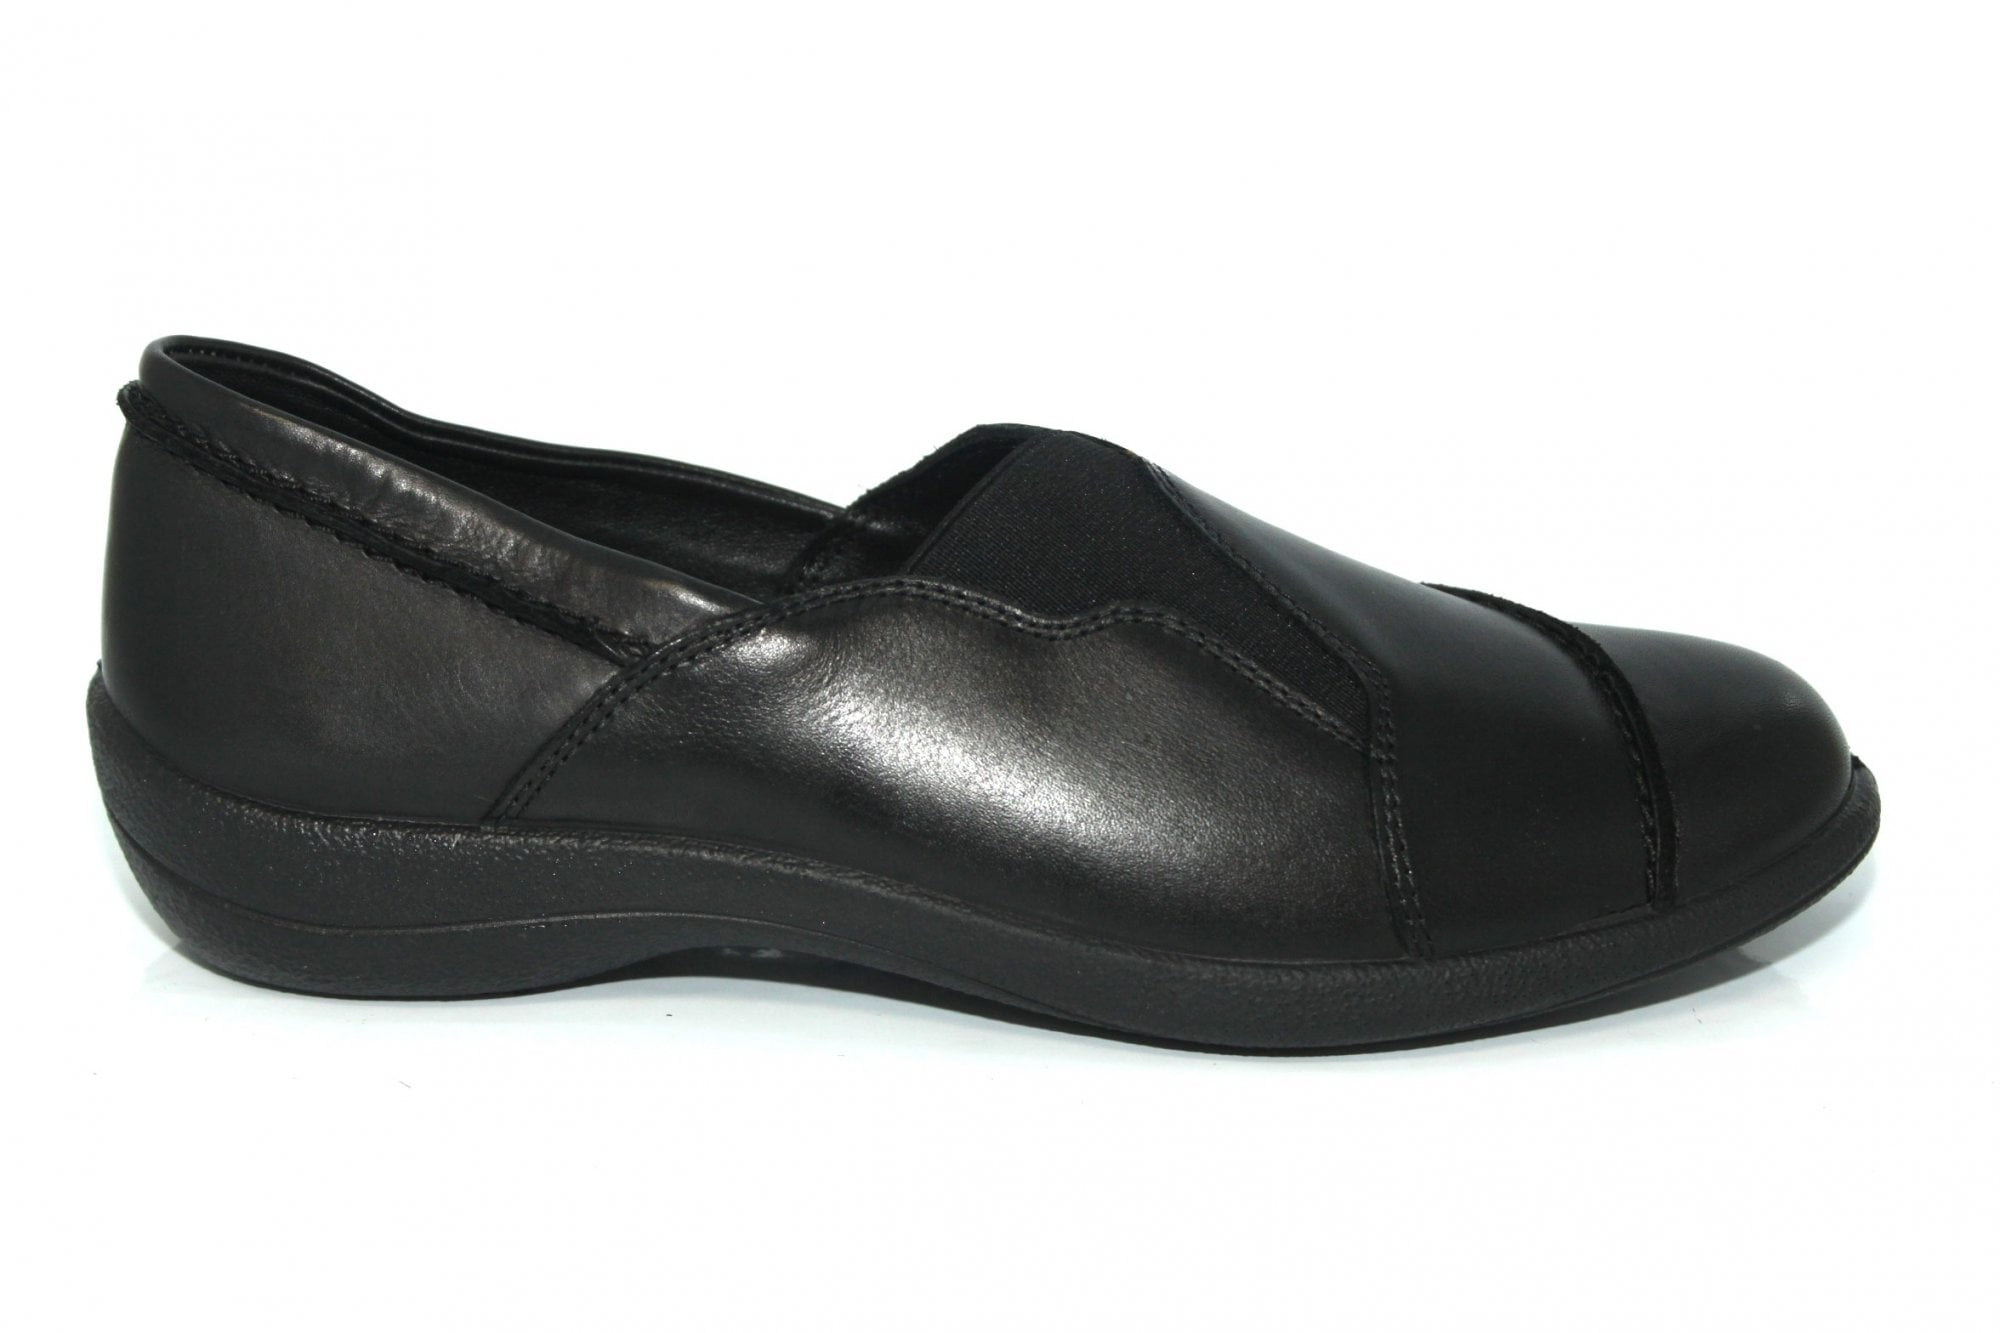 Padders RUTH Ladies Womens Leather Wide Slip On Comfort Loafers Shoes Black